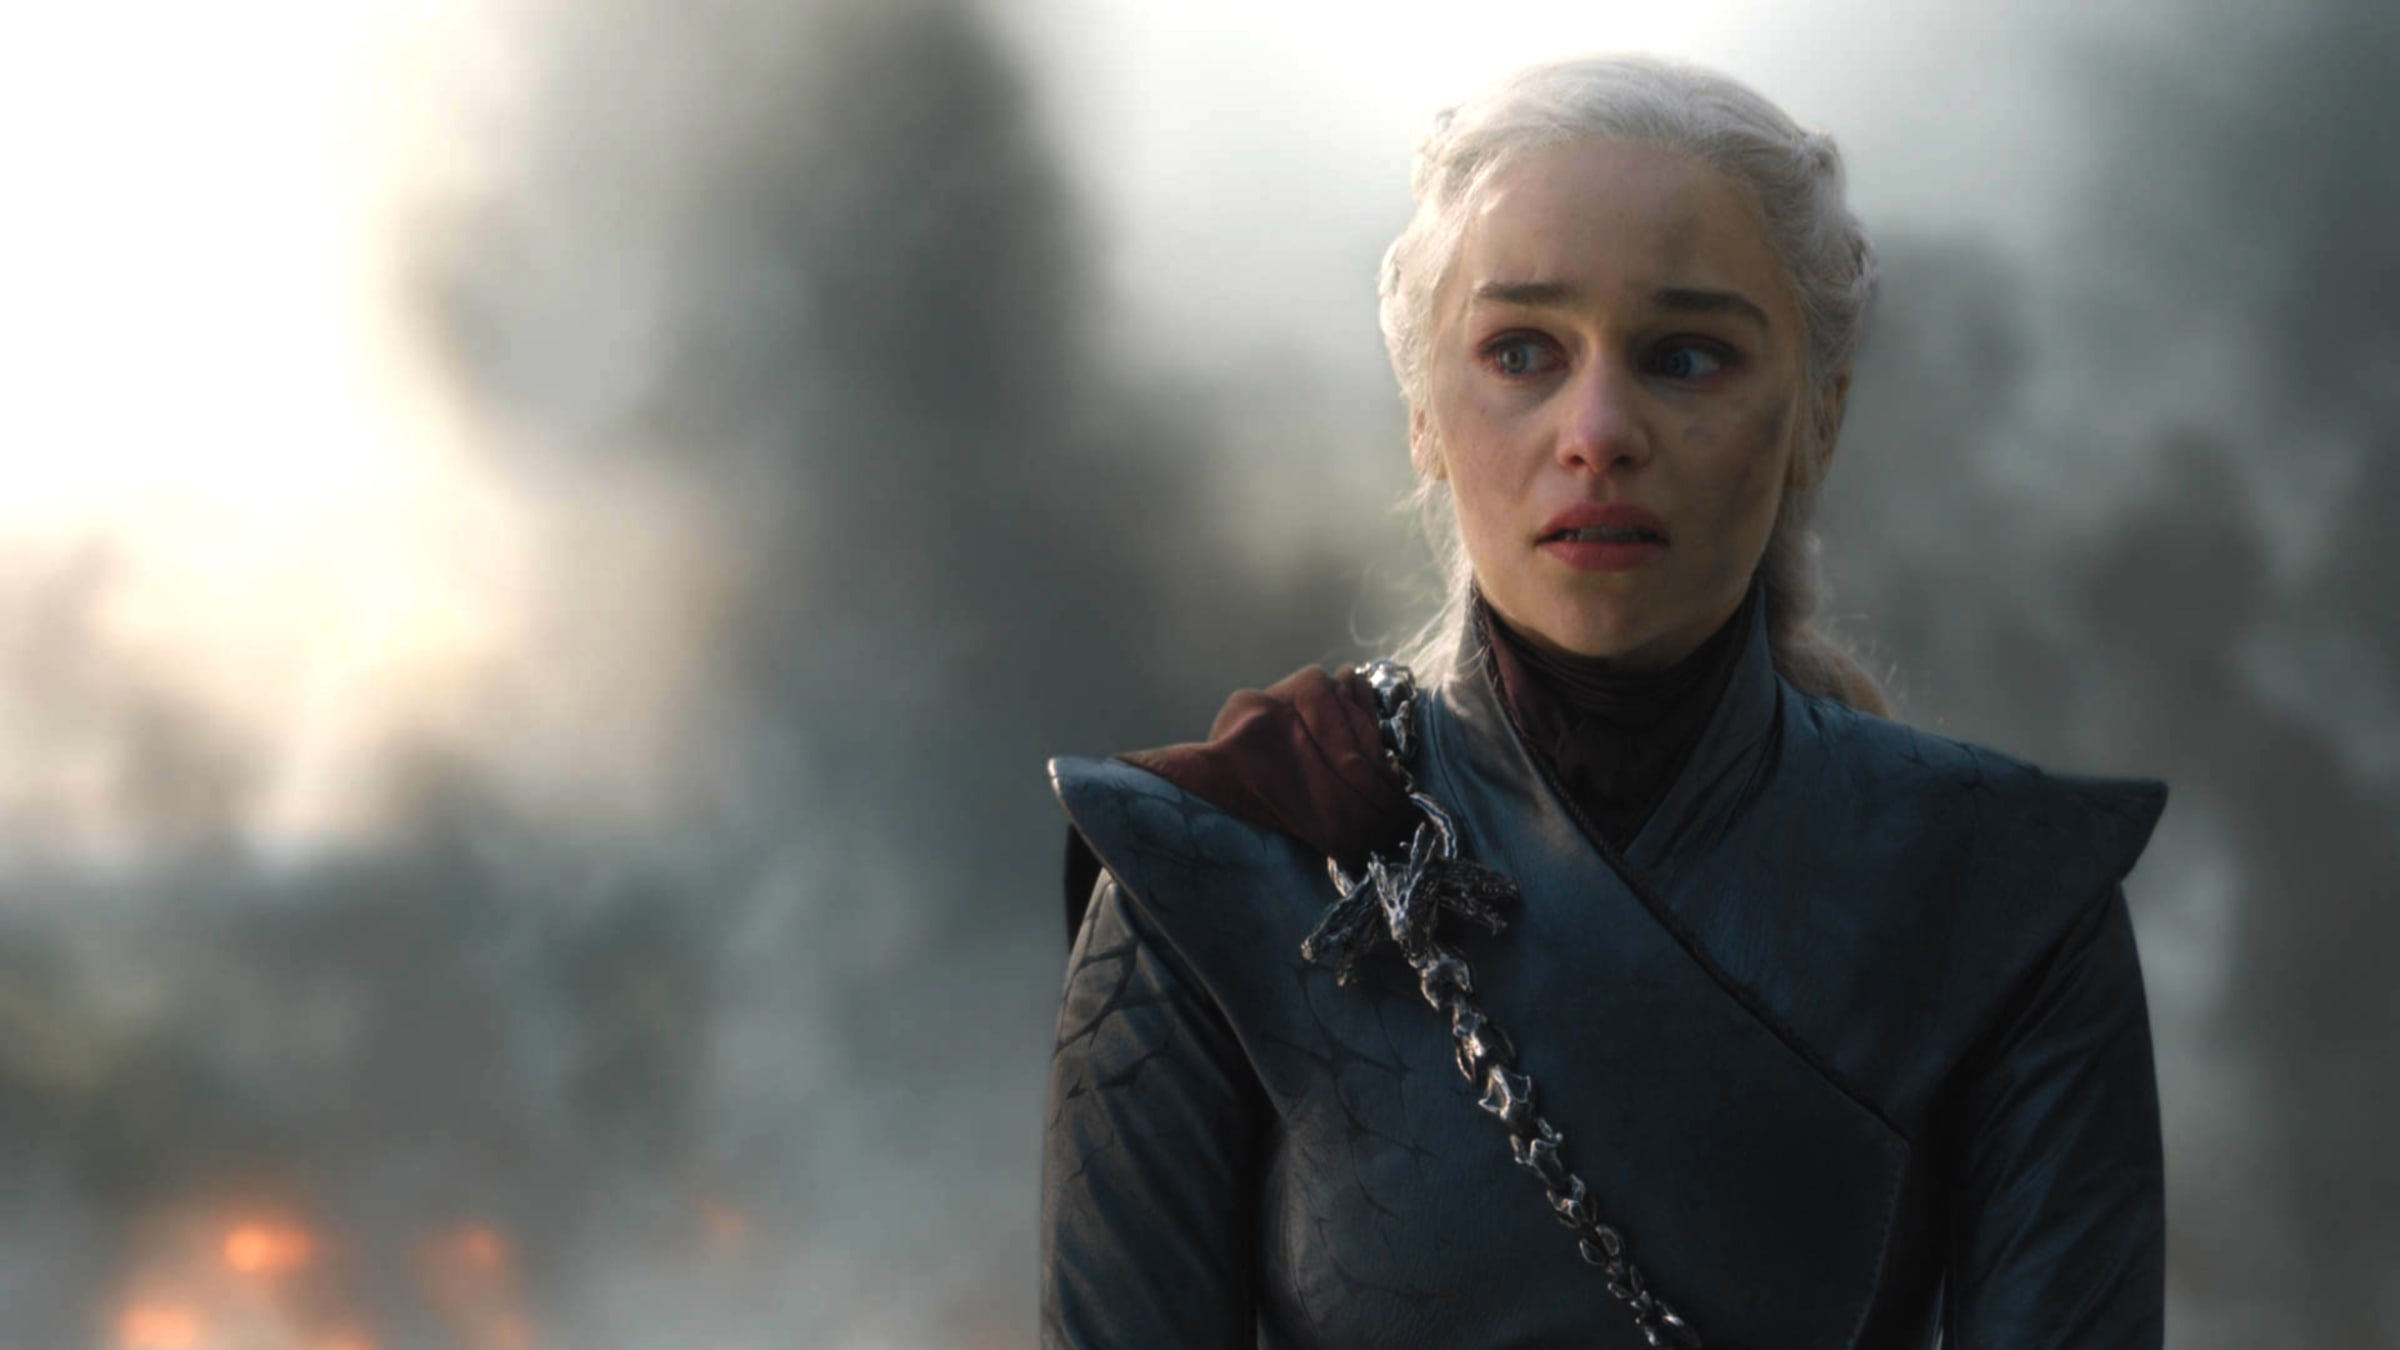 Game of Thrones' Baffling Decision to Turn Daenerys Into a Crazy, Murderous Ex-Girlfriend